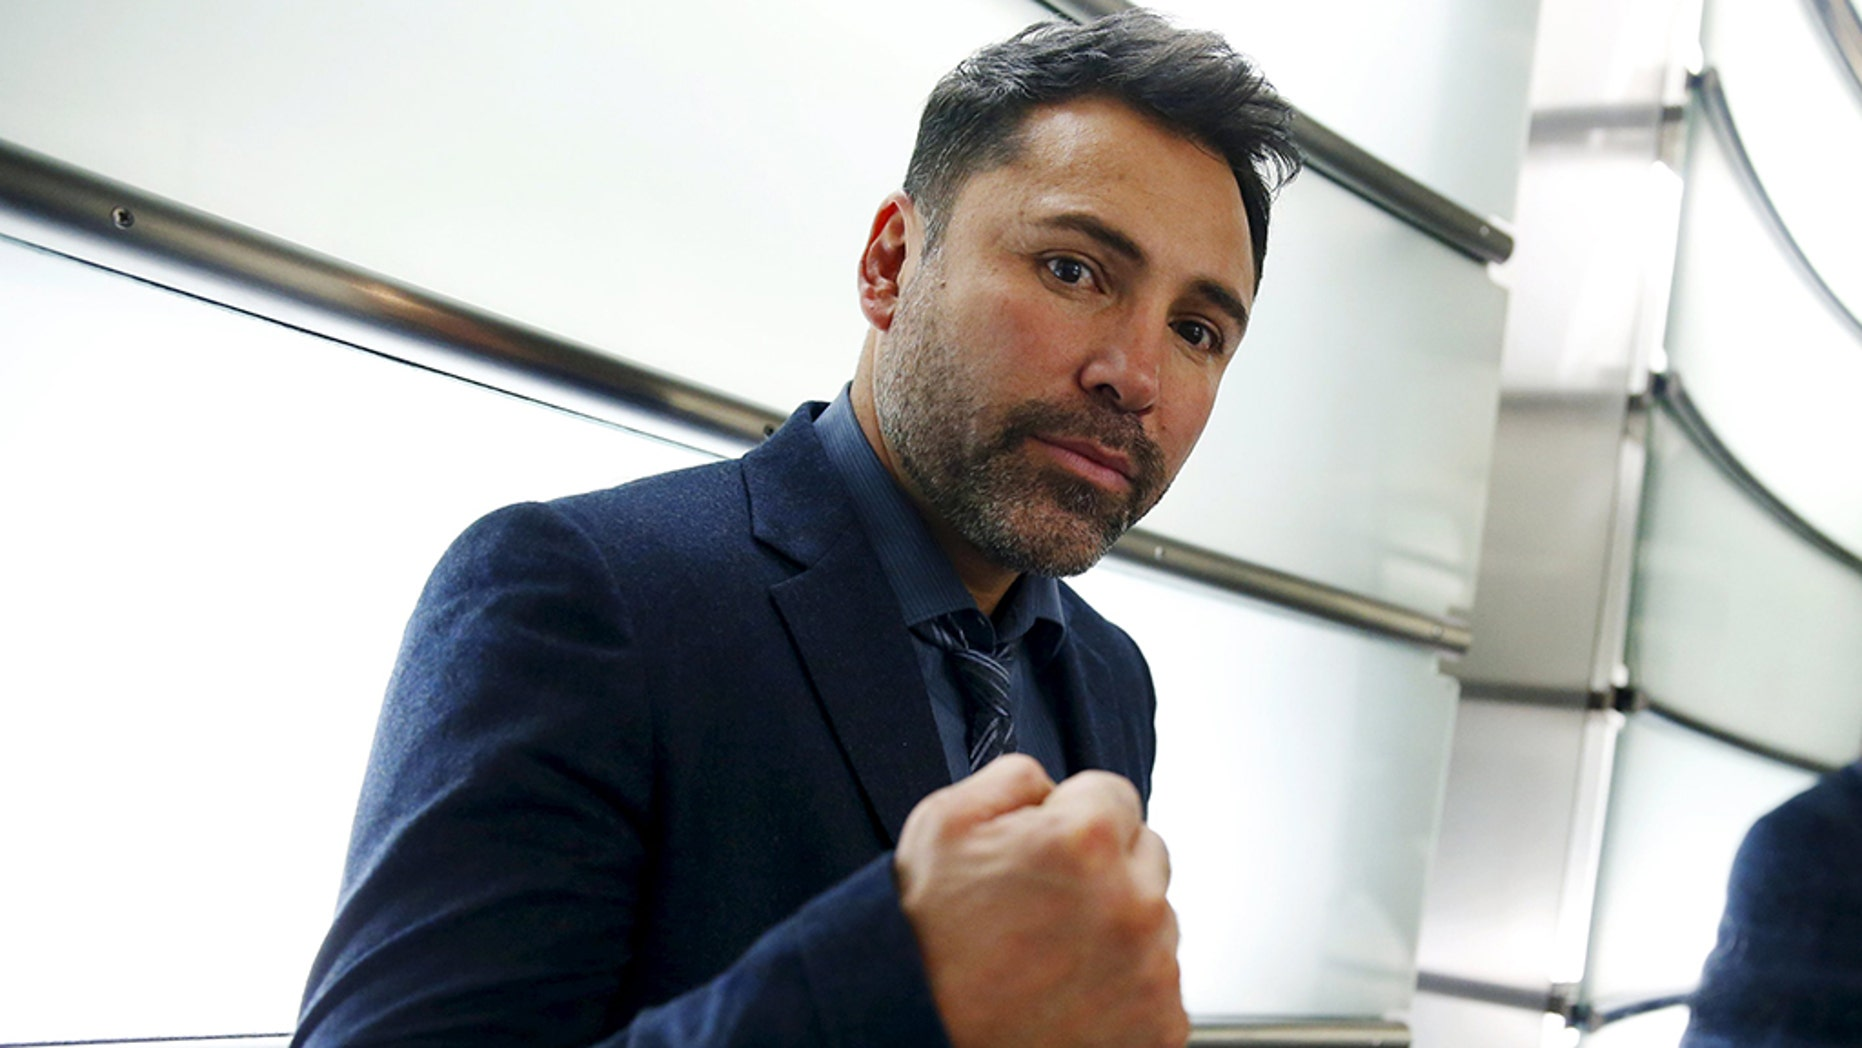 Oscar De La Hoya says he's thinking about running for president.